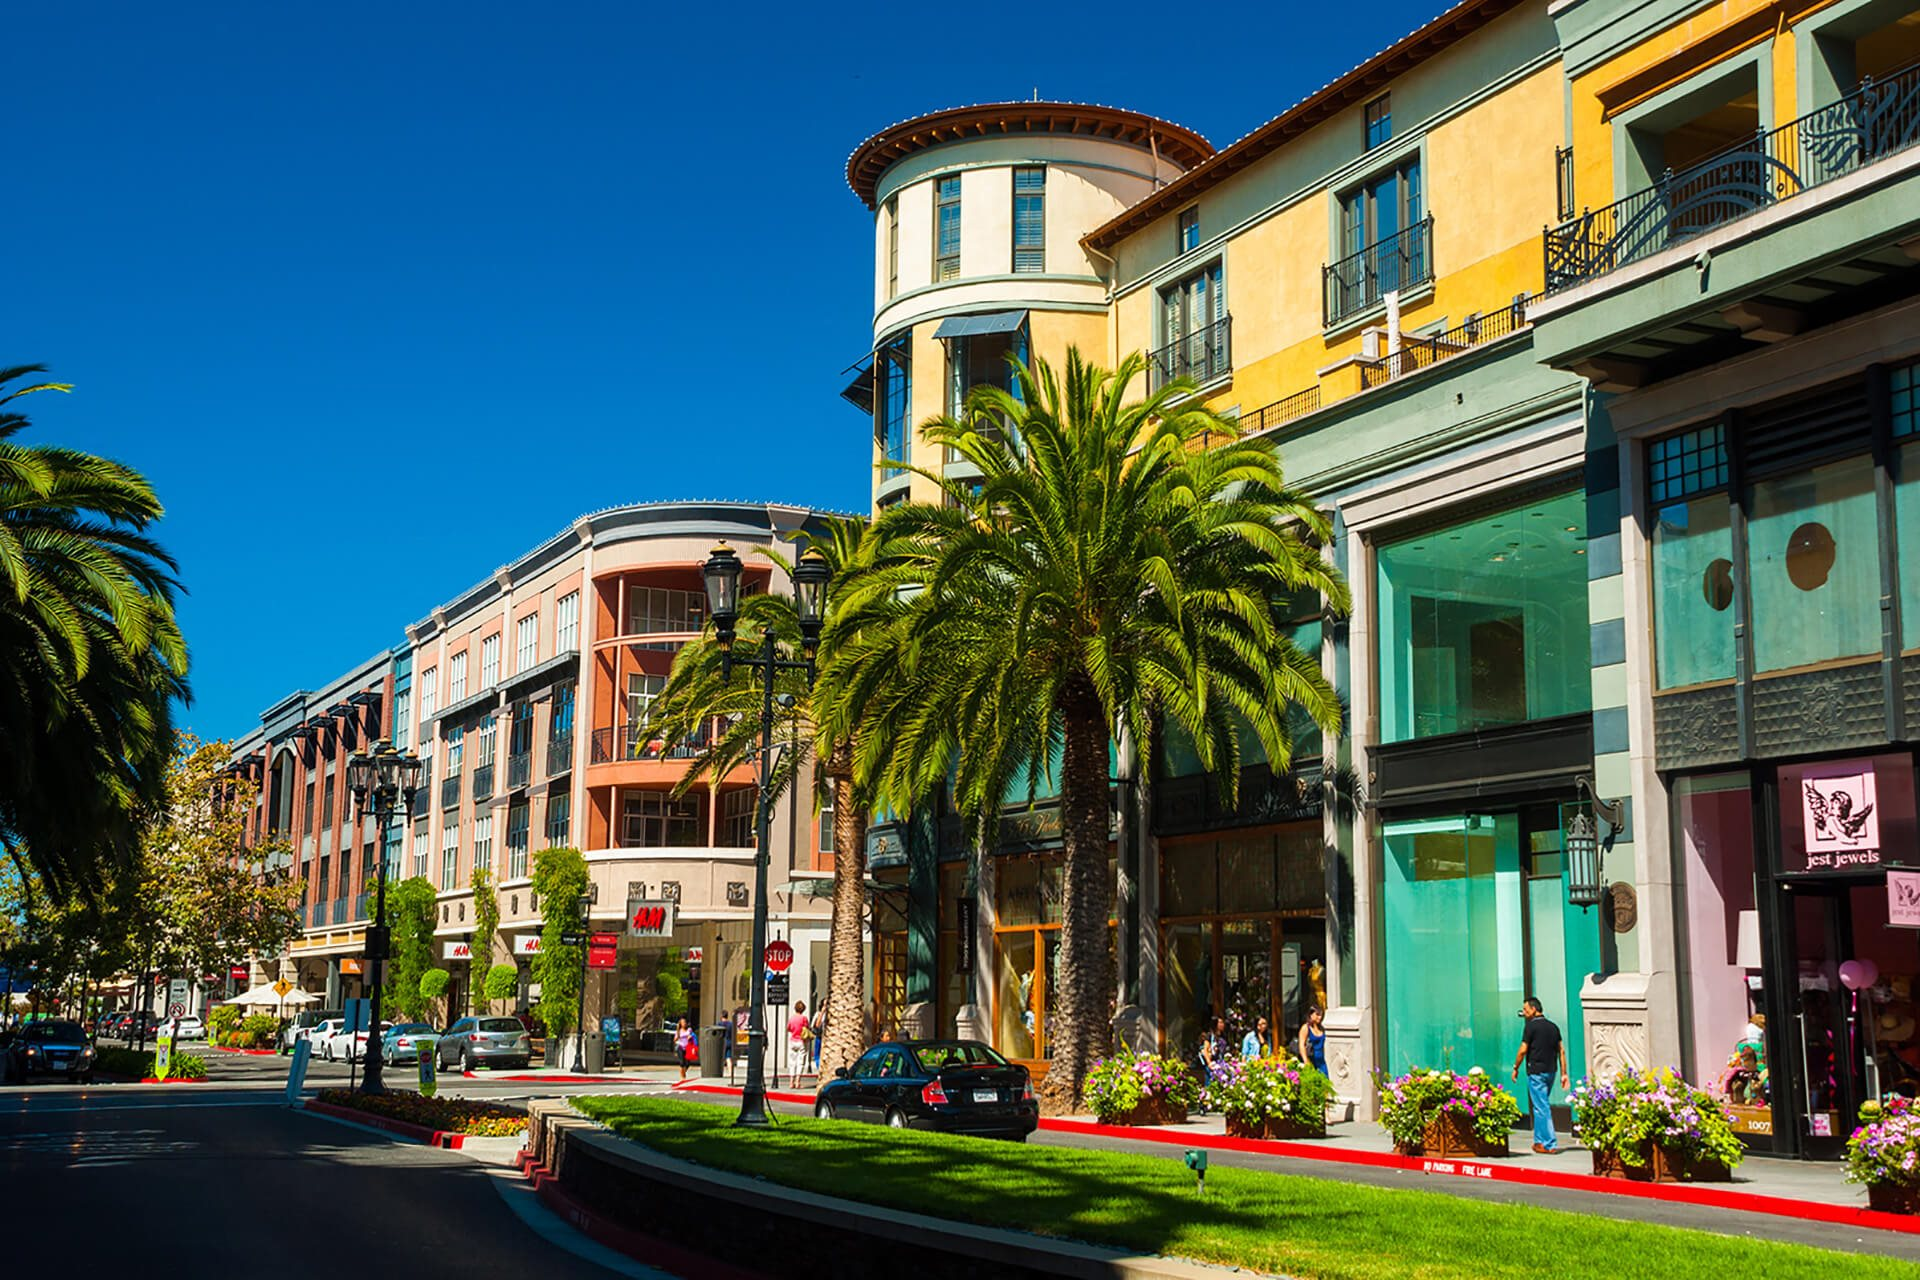 Downtown San Jose shopping near Cannery Park by Windsor, California, 95112